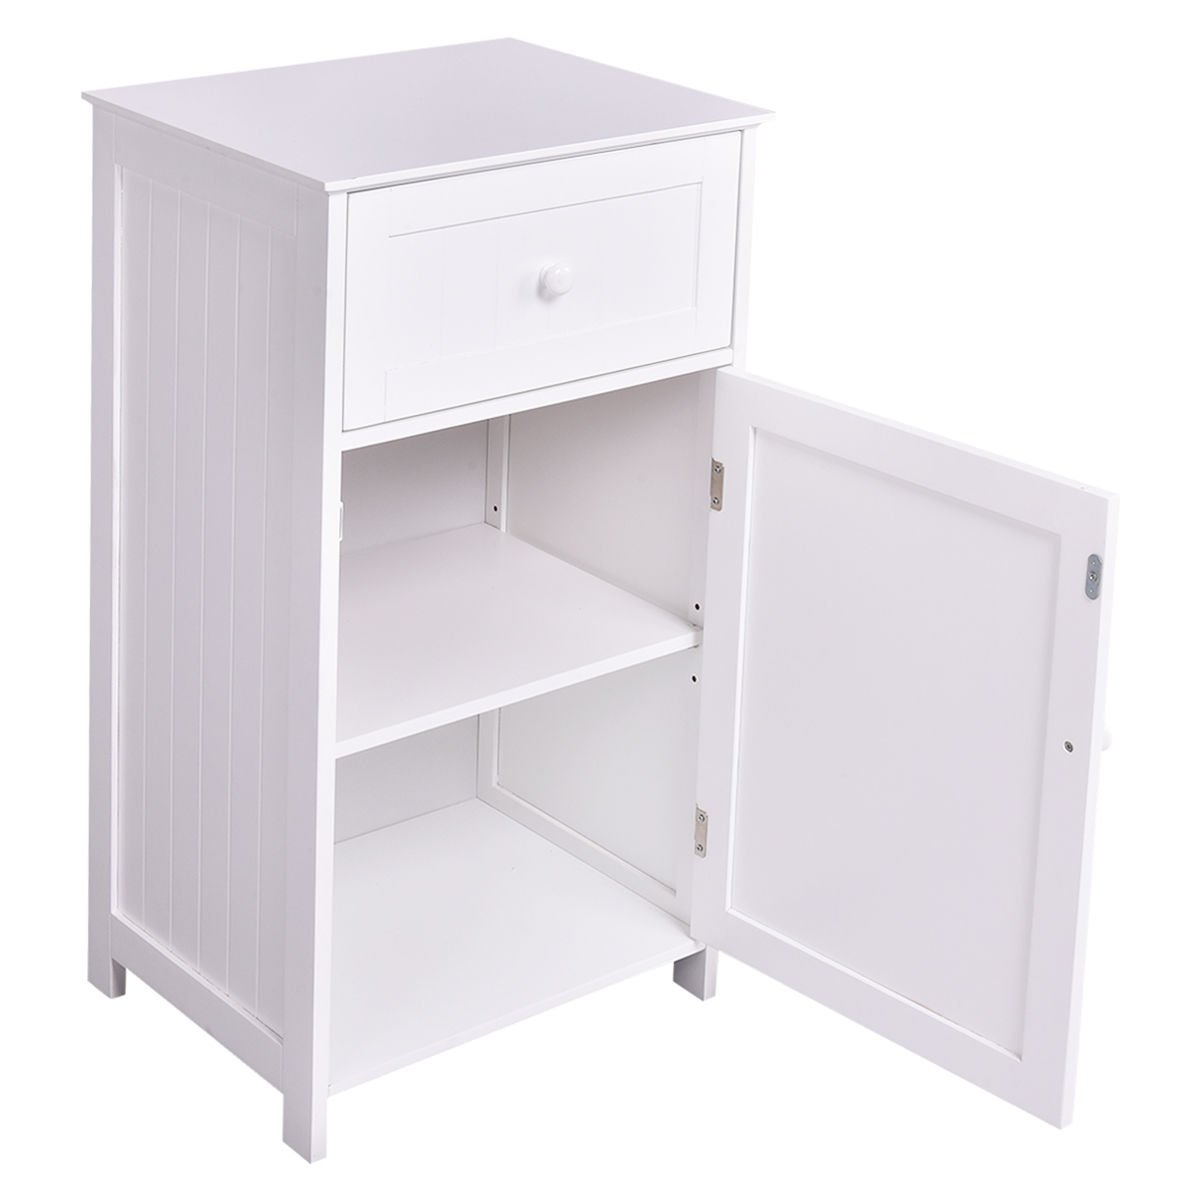 Tangkula Bathroom Floor Storage Cabinet